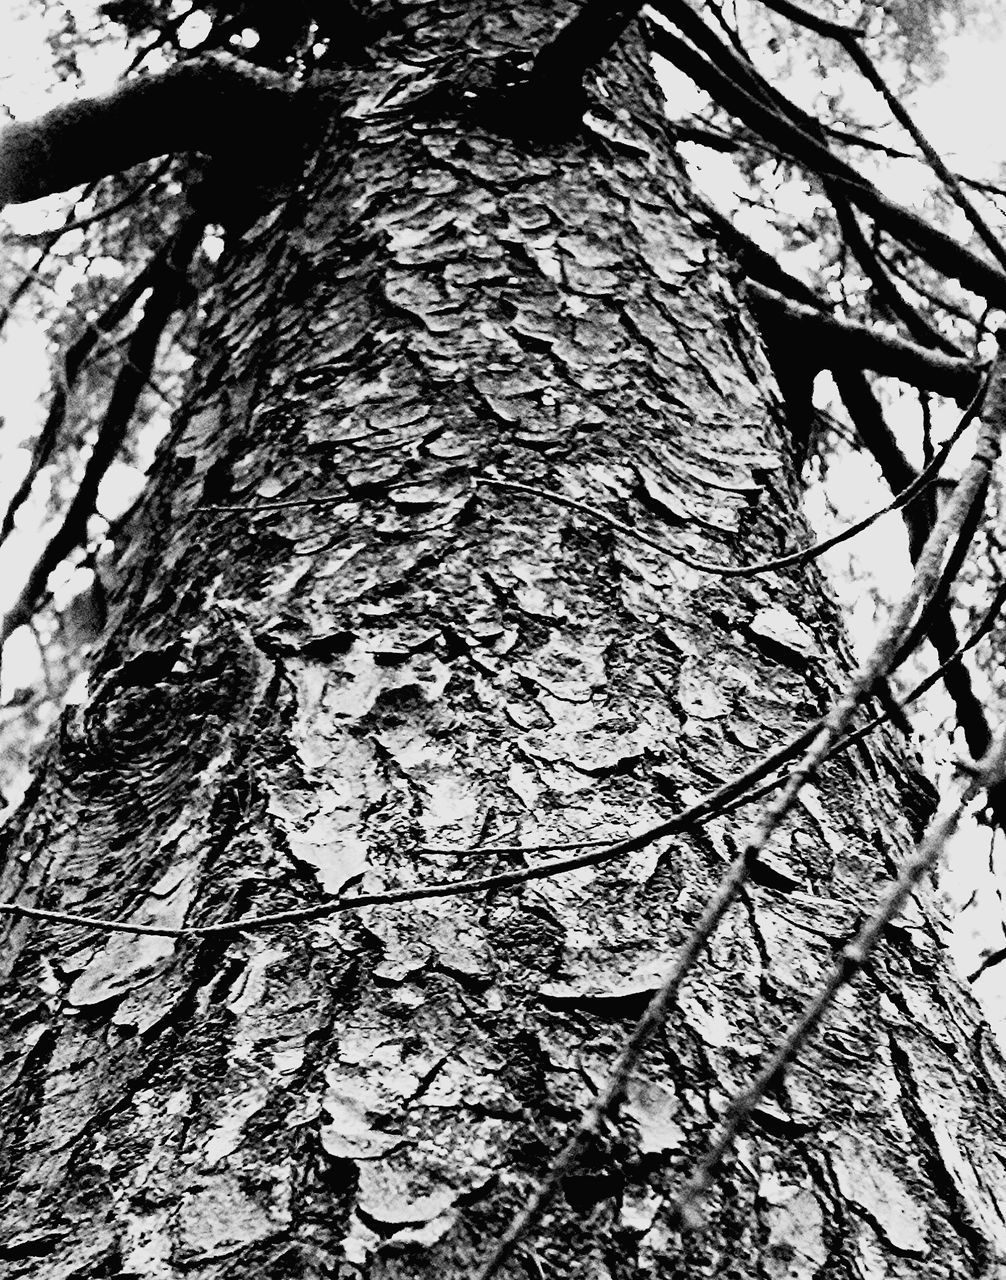 tree, tree trunk, branch, low angle view, nature, day, growth, bark, outdoors, no people, textured, beauty in nature, close-up, fragility, sky